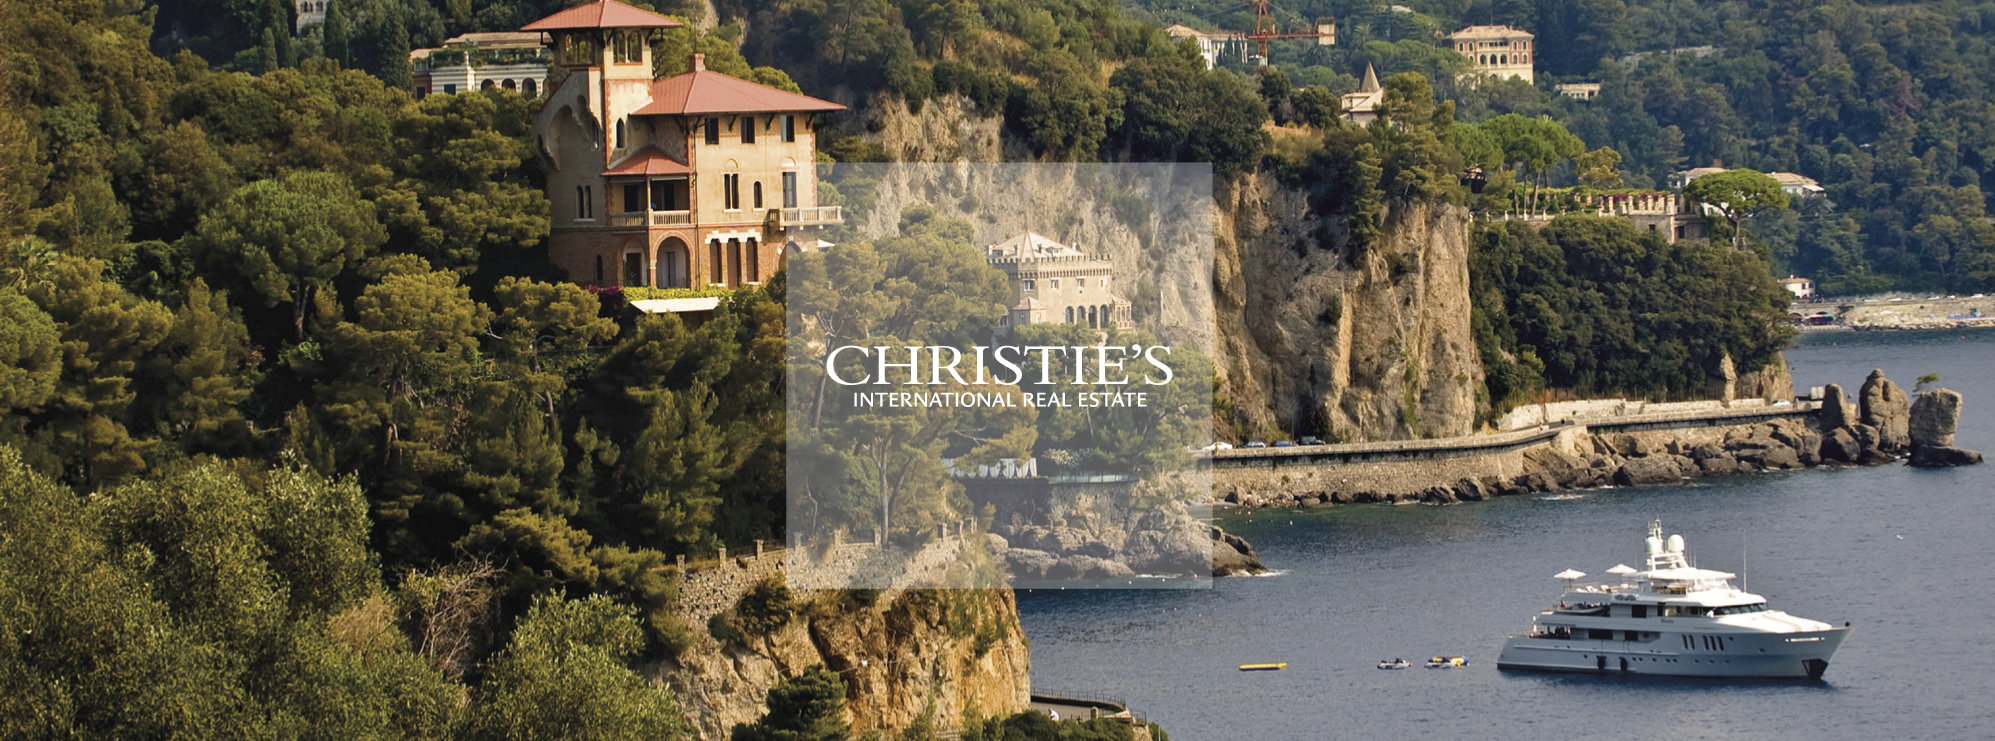 Why Christie's?